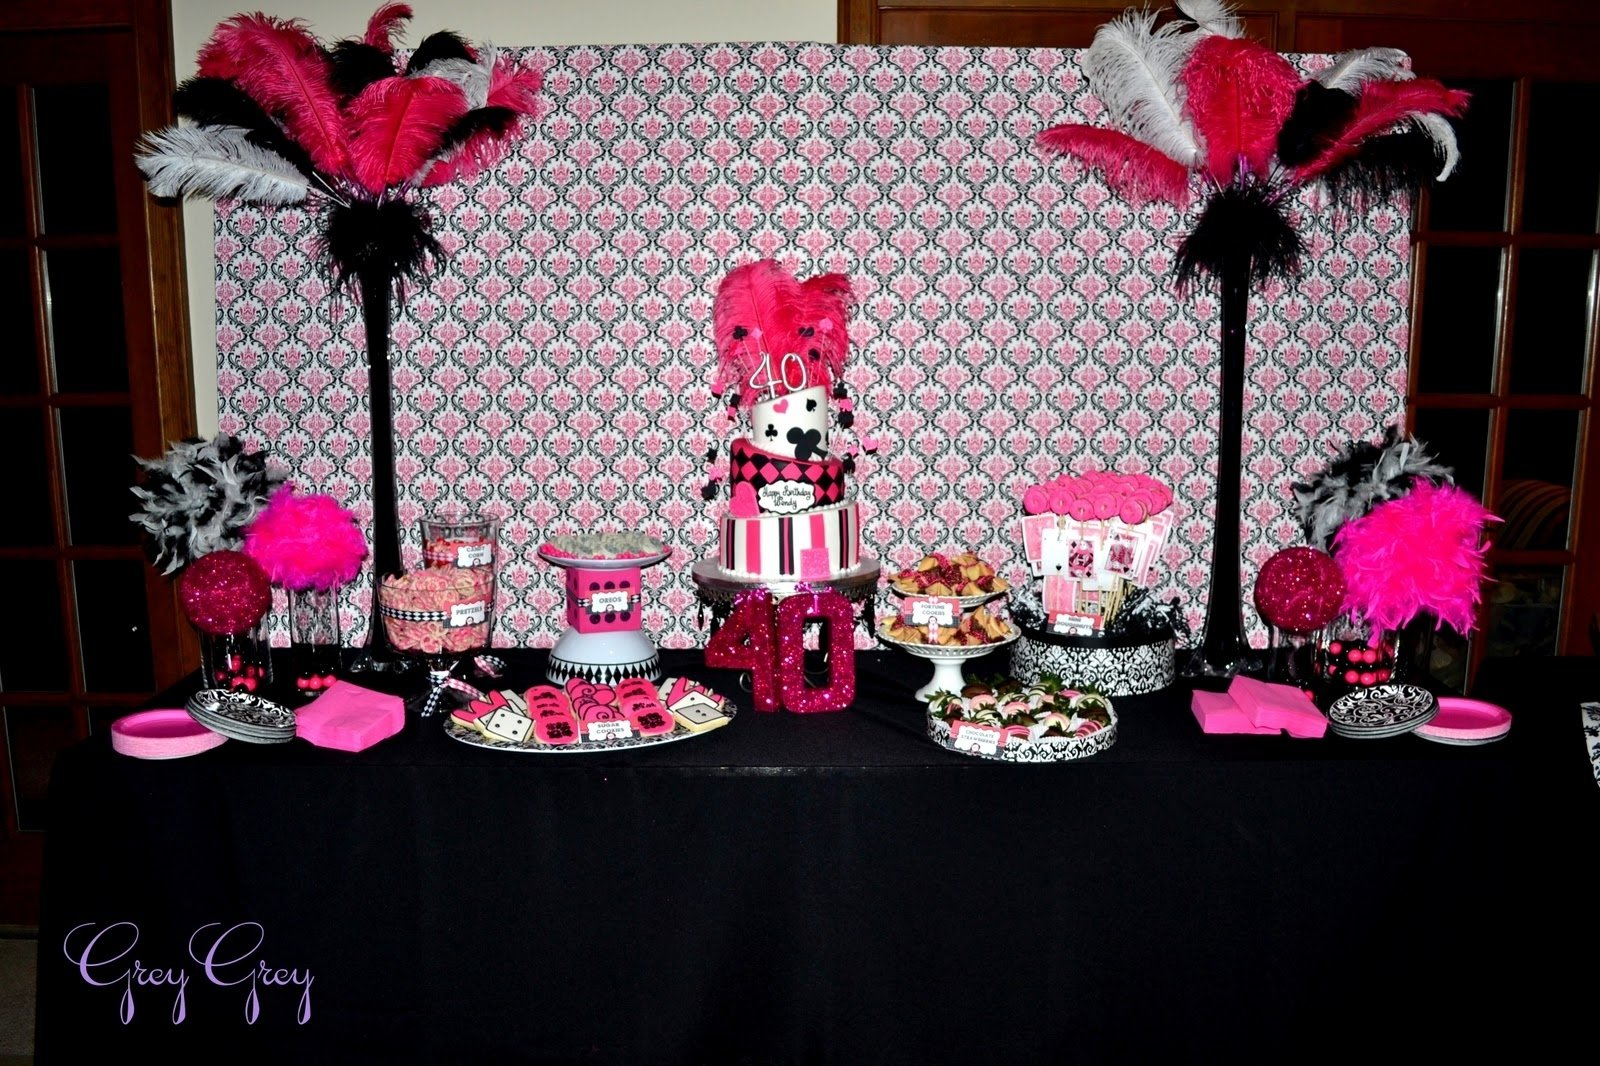 10 Lovely Ideas For 40Th Birthday Party Female greygrey designs my parties hot pink glamorous casino 40th birthday 2020